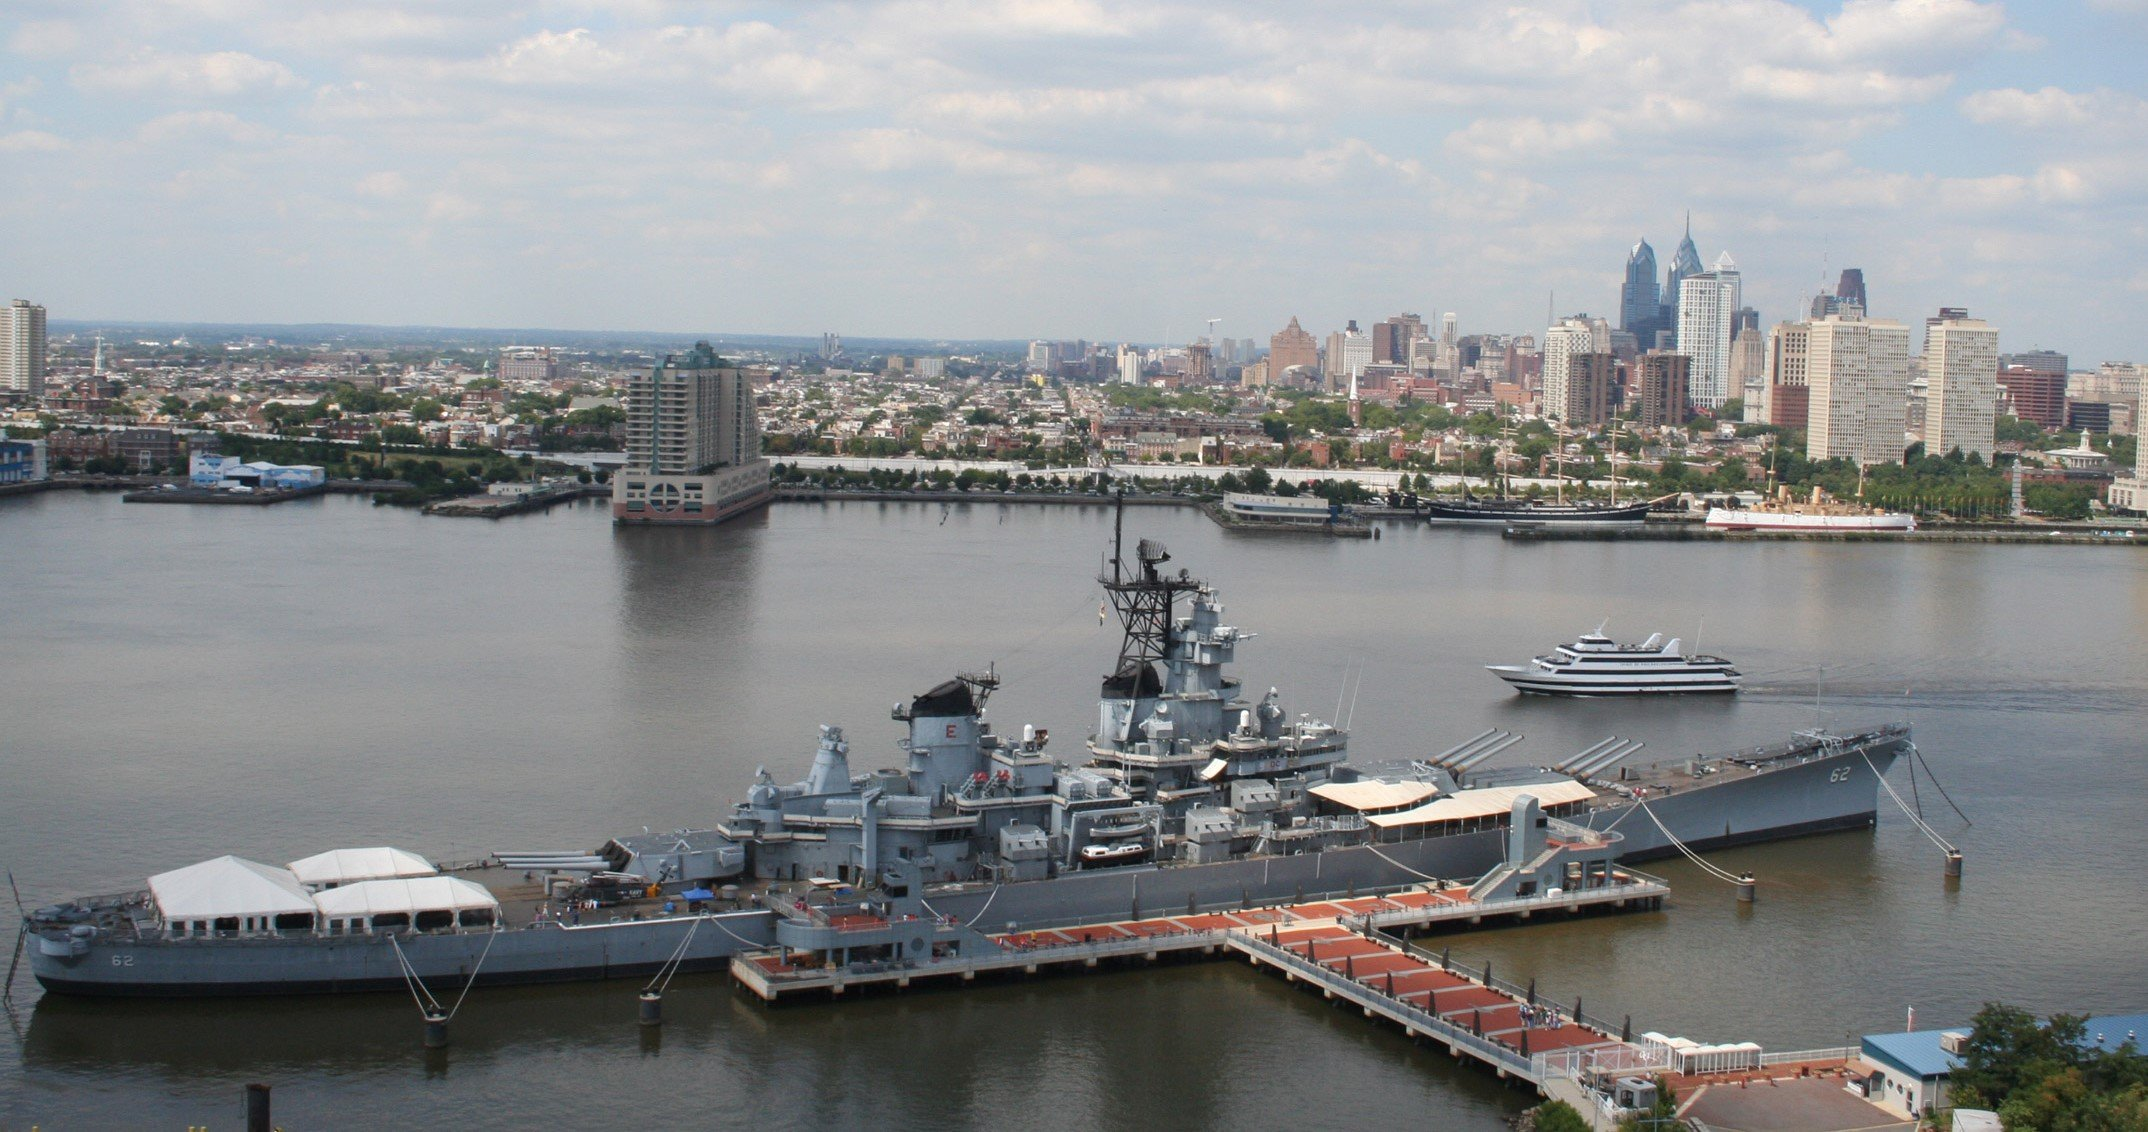 The USS New Jersey has been permanetly docked in Camden as a museum since 2001. (Visit Philly)